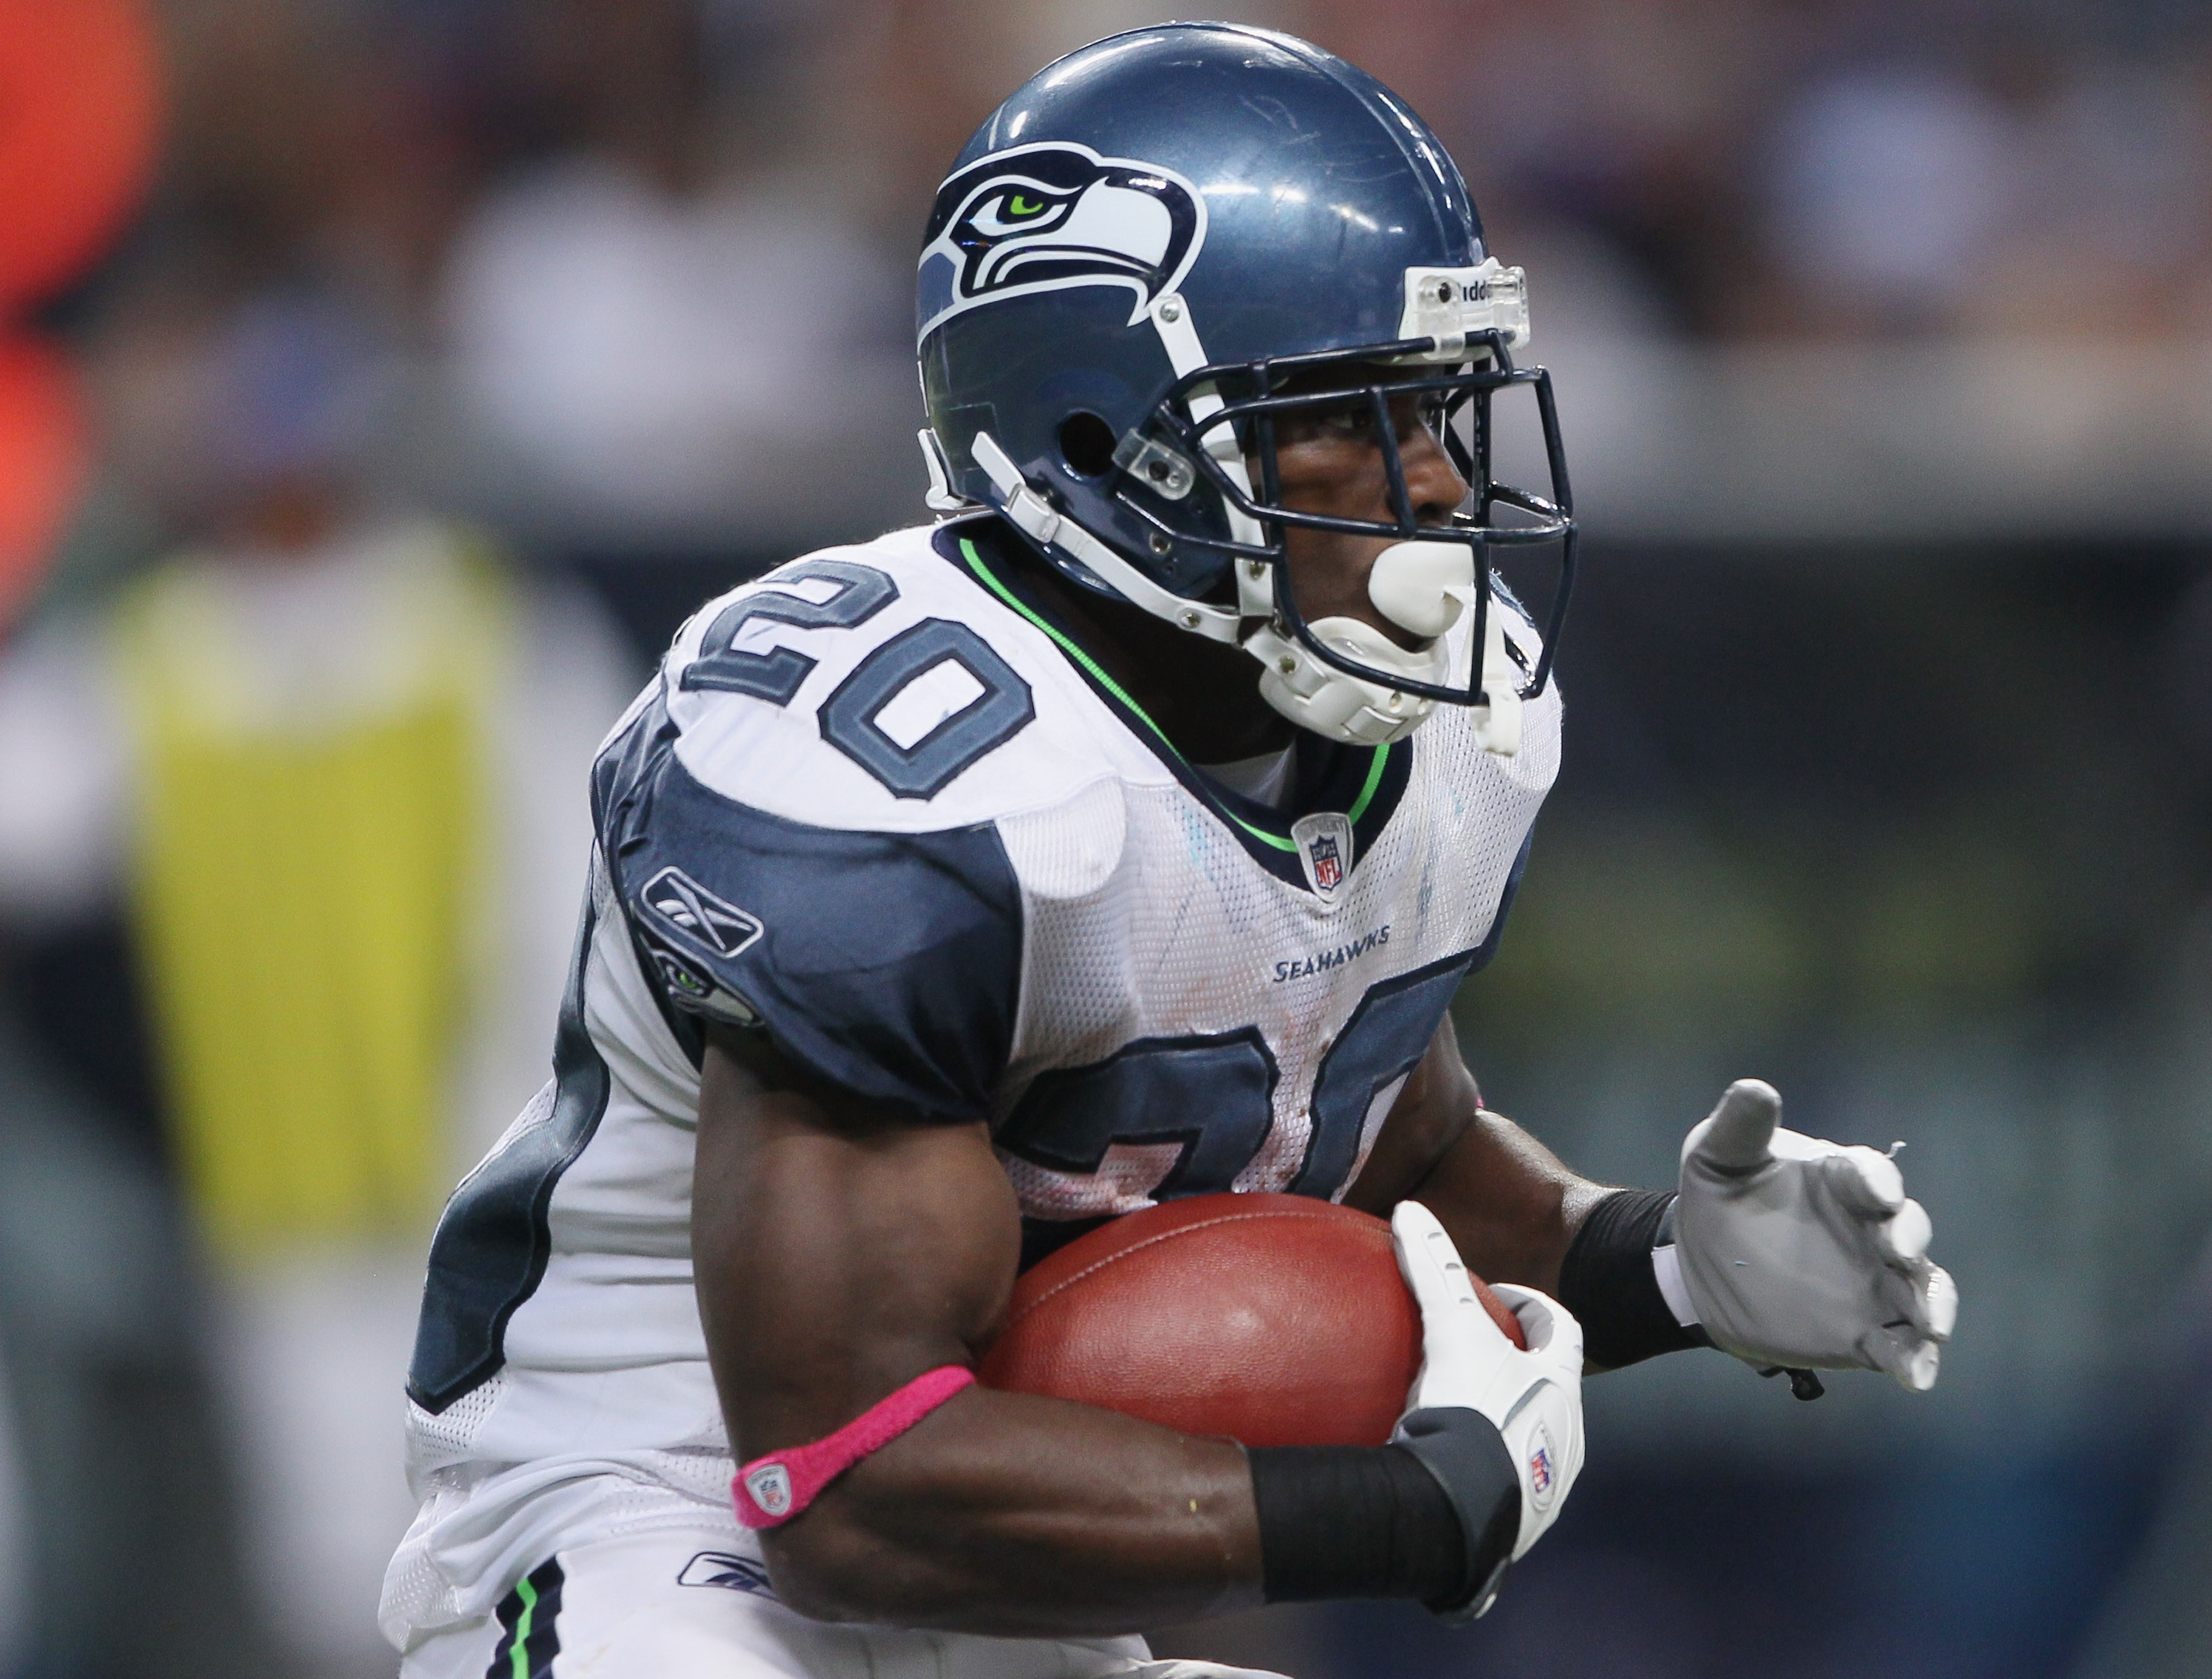 ST. LOUIS - OCTOBER 03:  :  Justin Forsett #20 of the Seattle Seahawks carries the ball in the first half against the St. Louis Rams on October 3, 2010 at Edward Jones Dome in St. Louis, Missouri.  (Photo by Elsa/Getty Images)